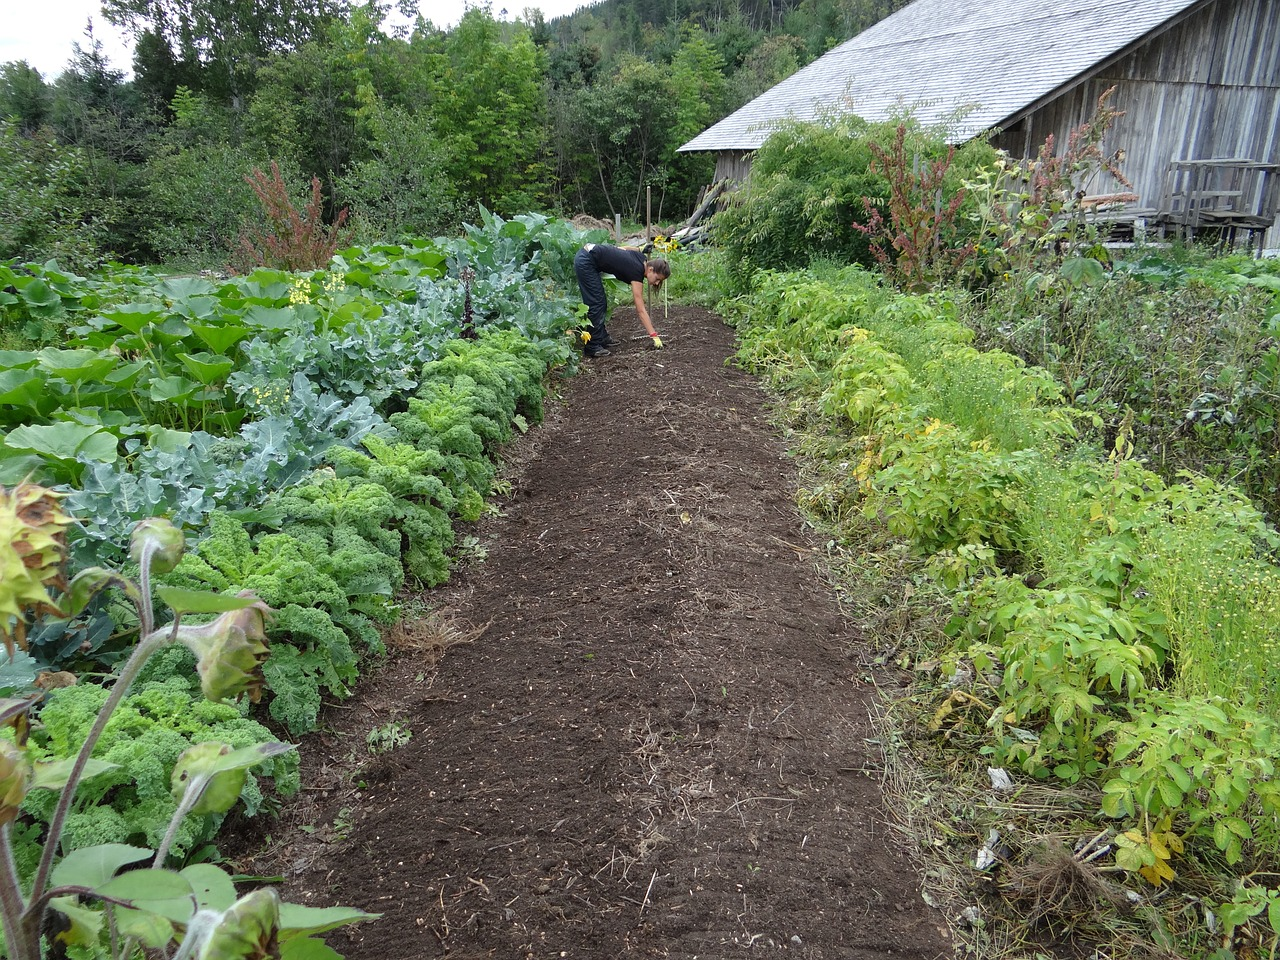 Vegetables in rows, one type of Companion Planting